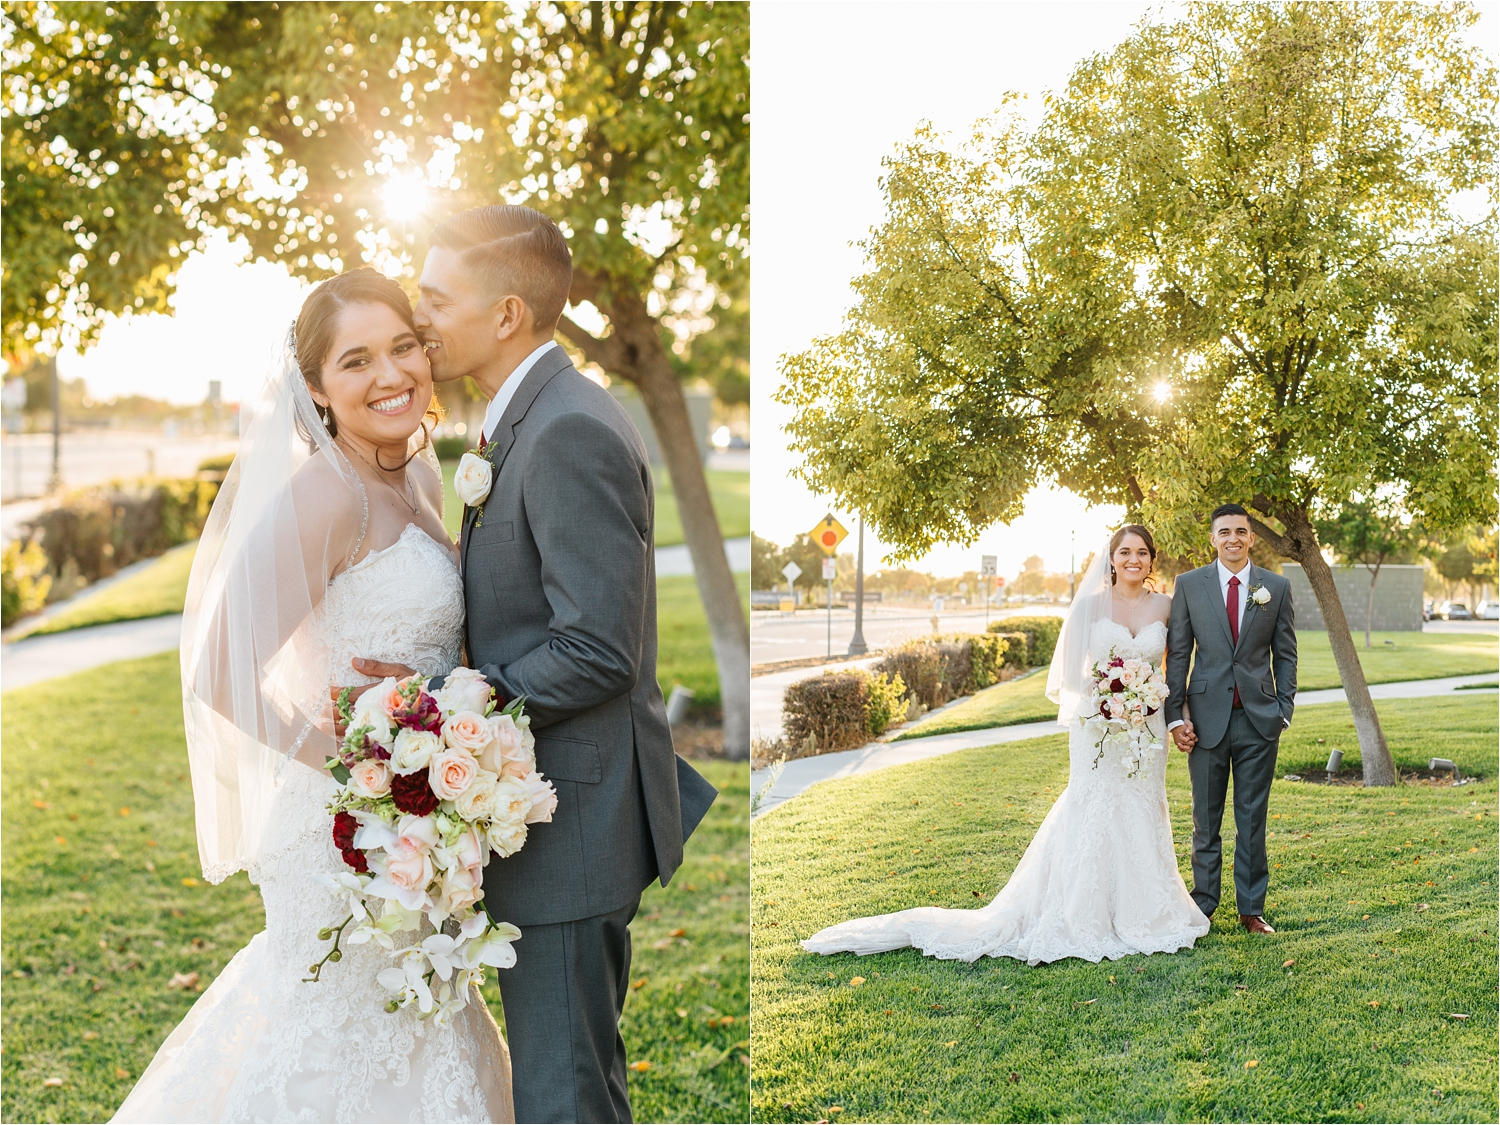 Warm and Natural Wedding Photos in California - Natural Light Wedding Photographer in Southern California